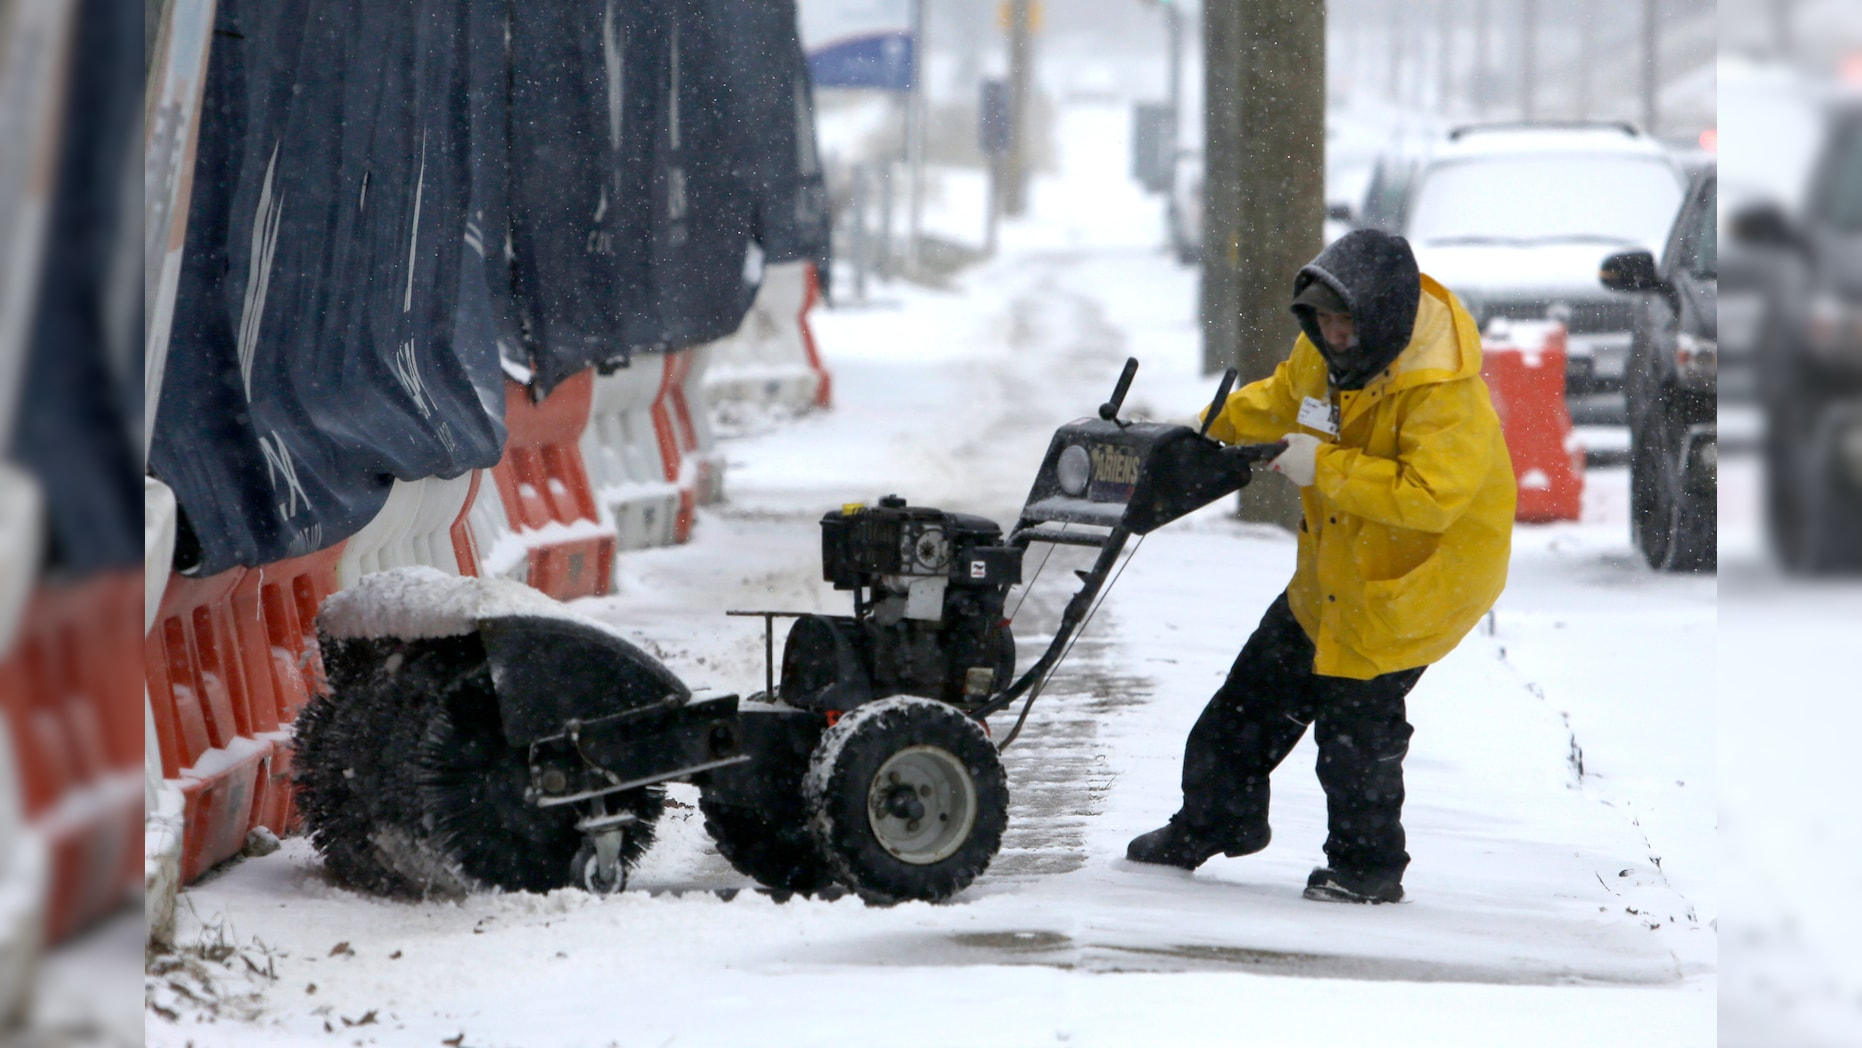 A man works to turn his snow-clearing machine on Sunday in Philadelphia. After days of frigid temperatures, the Northeast is being hit with a whopper of a storm that could dump well over a foot of snow in many areas and create blizzard-like conditions. (AP)